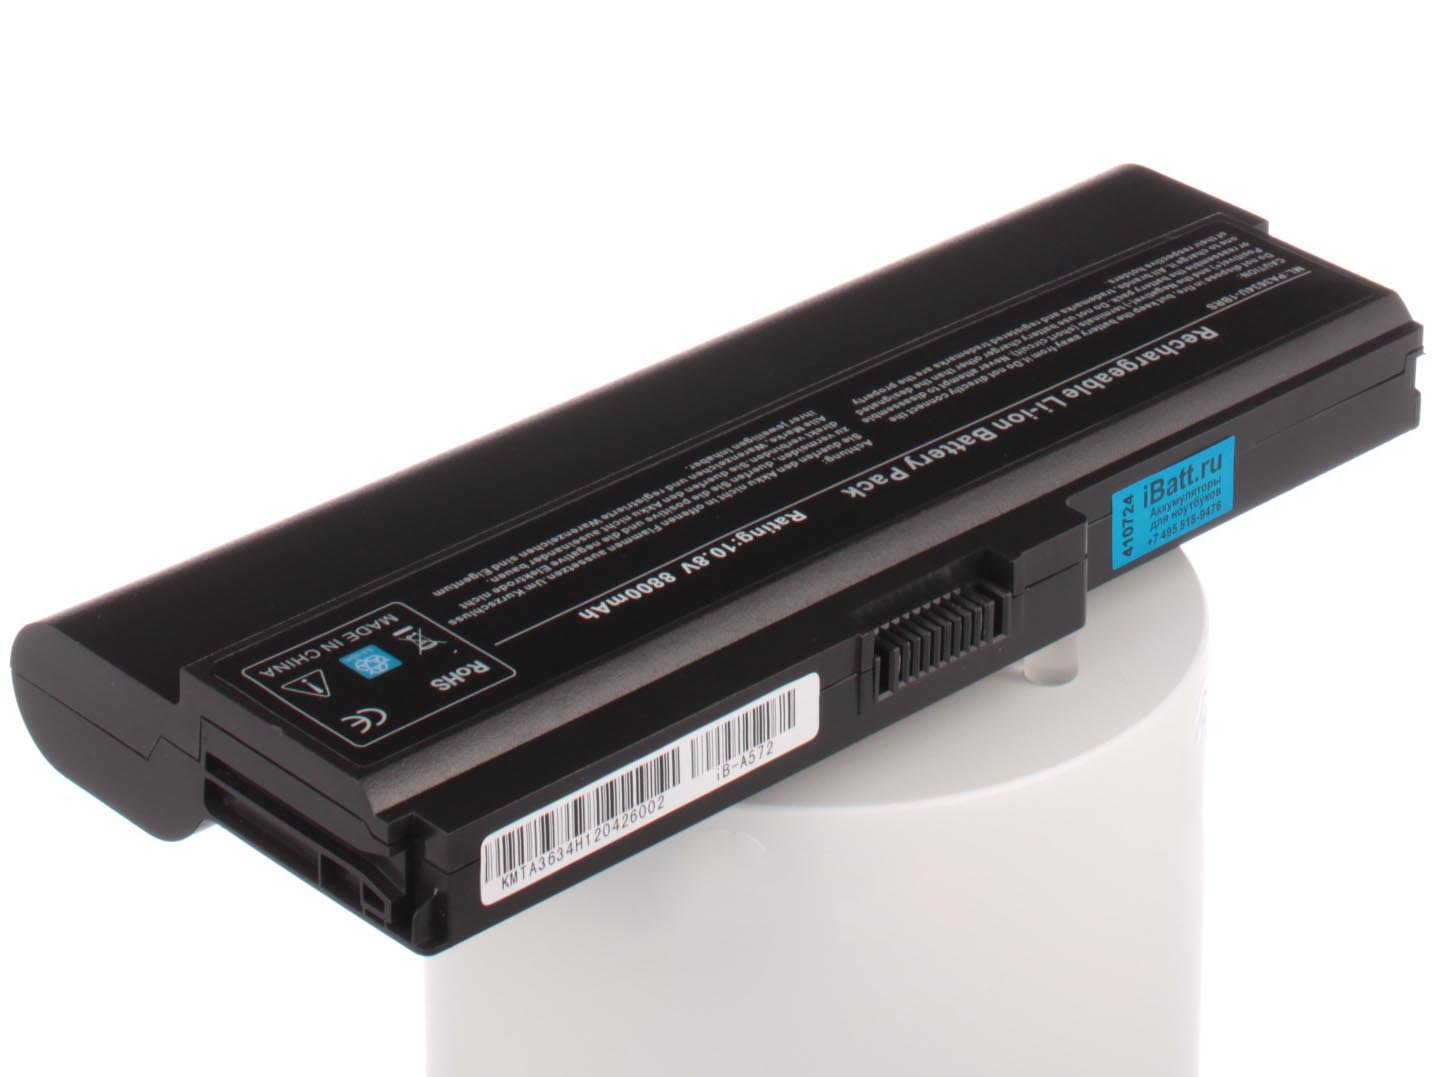 Аккумулятор для ноутбука iBatt для ToshiBa Satellite L750-134, Satellite C660D-A2K, Satellite C660-29F, Satellite L755-16P, Satellite C660-14J, Satellite C660-1V9, Satellite Pro L650, Satellite C660D-164, Satellite C660-1P4 wholesale k000111550 la 6843p for toshiba satellite c660 c660d laptop motherboard 100% work perfect